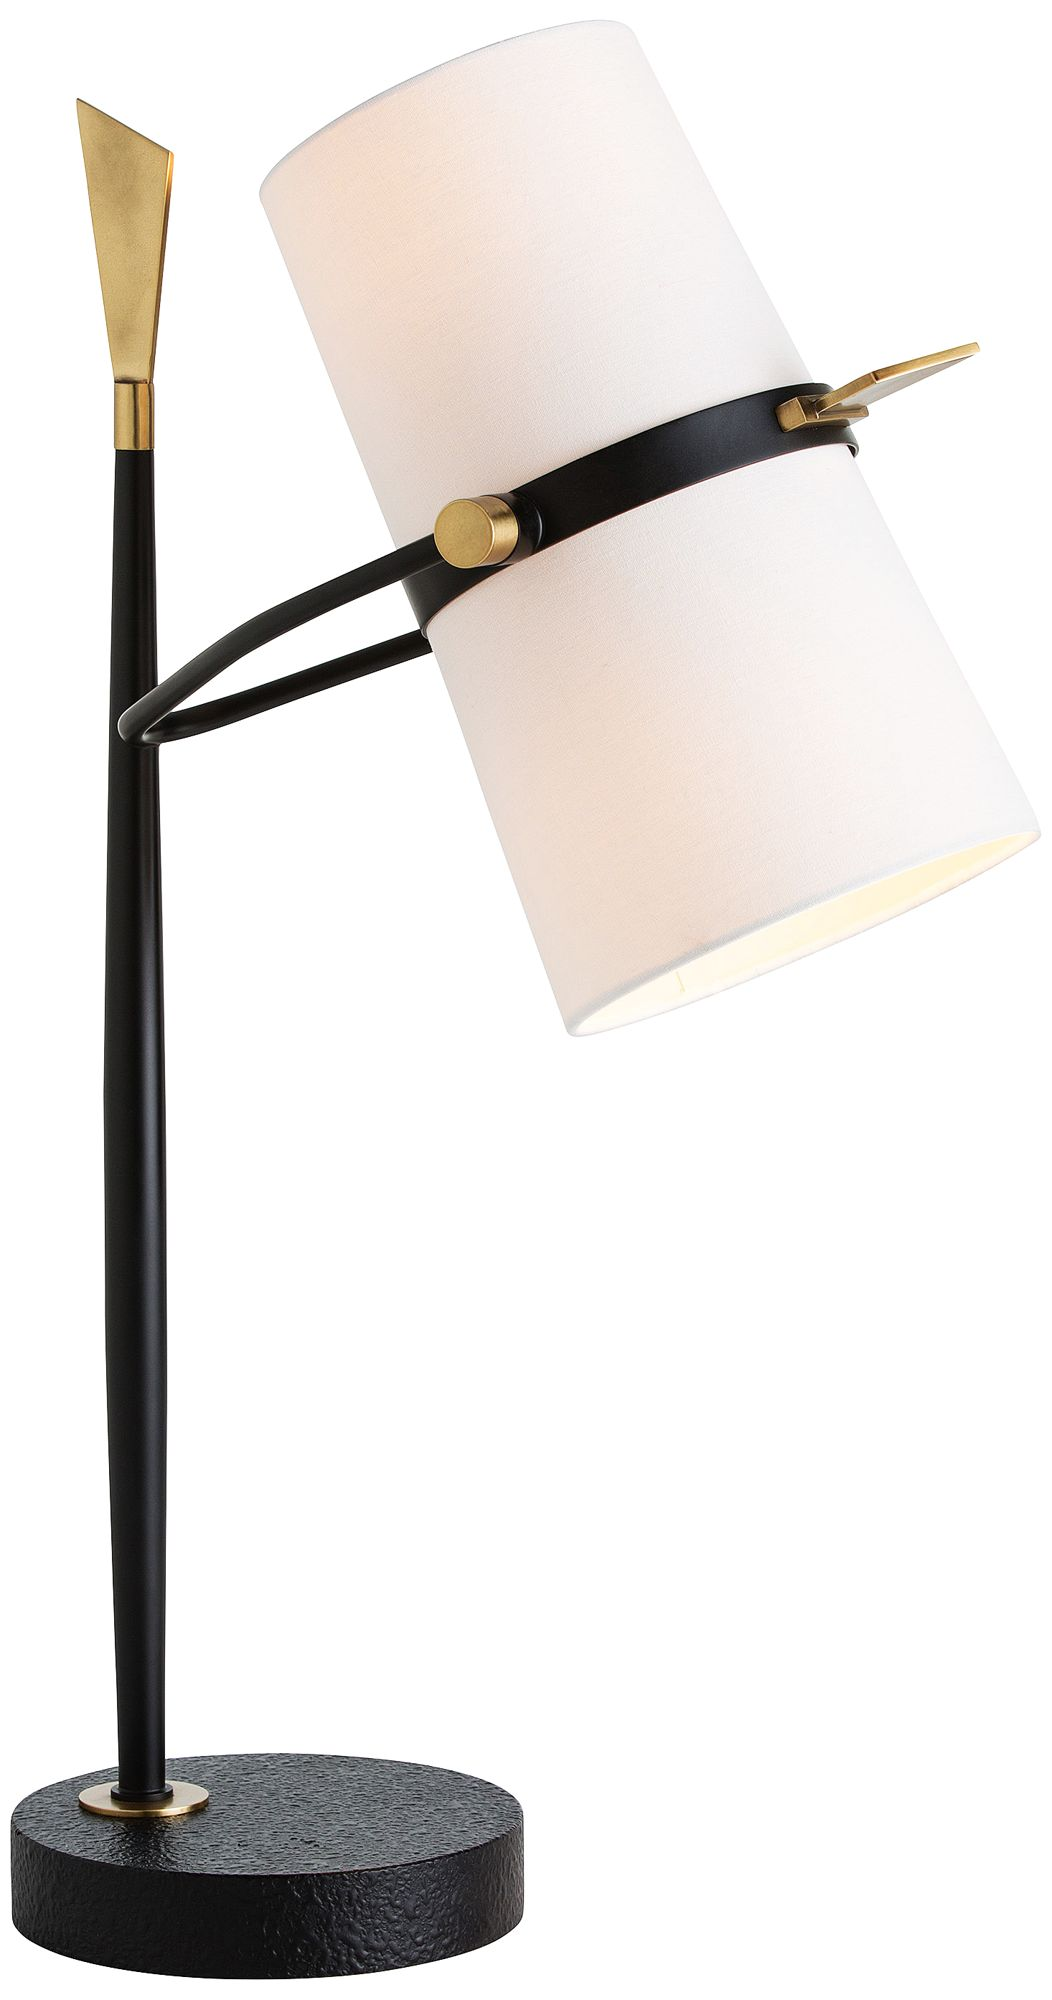 Arteriors Home Yasmin Black and Brass Table Lamp 5X264 Lamps Plus